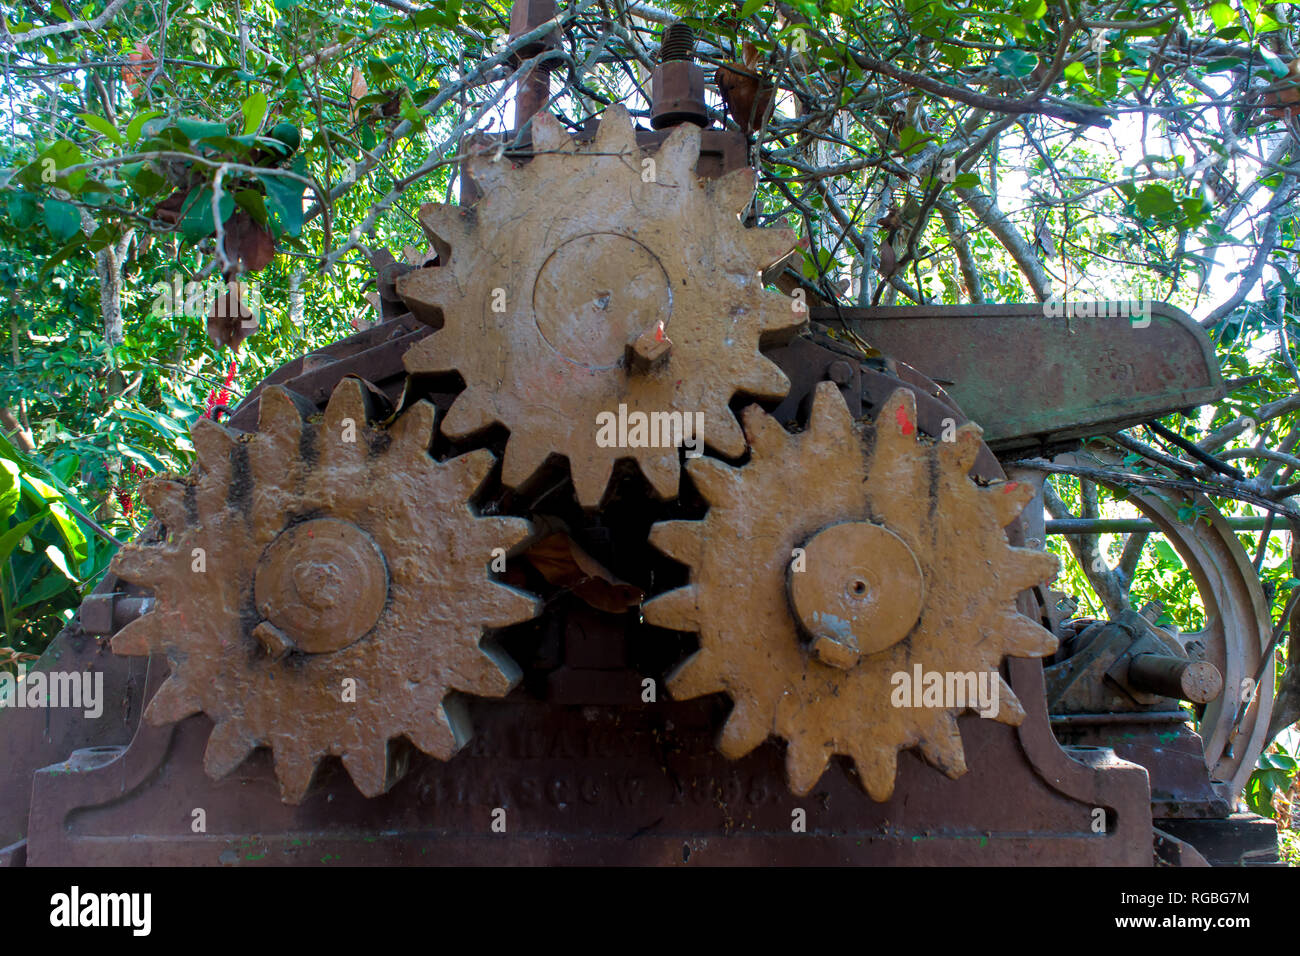 Gears or gears of rusty metal left unused, old sugar cane milling - Stock Image